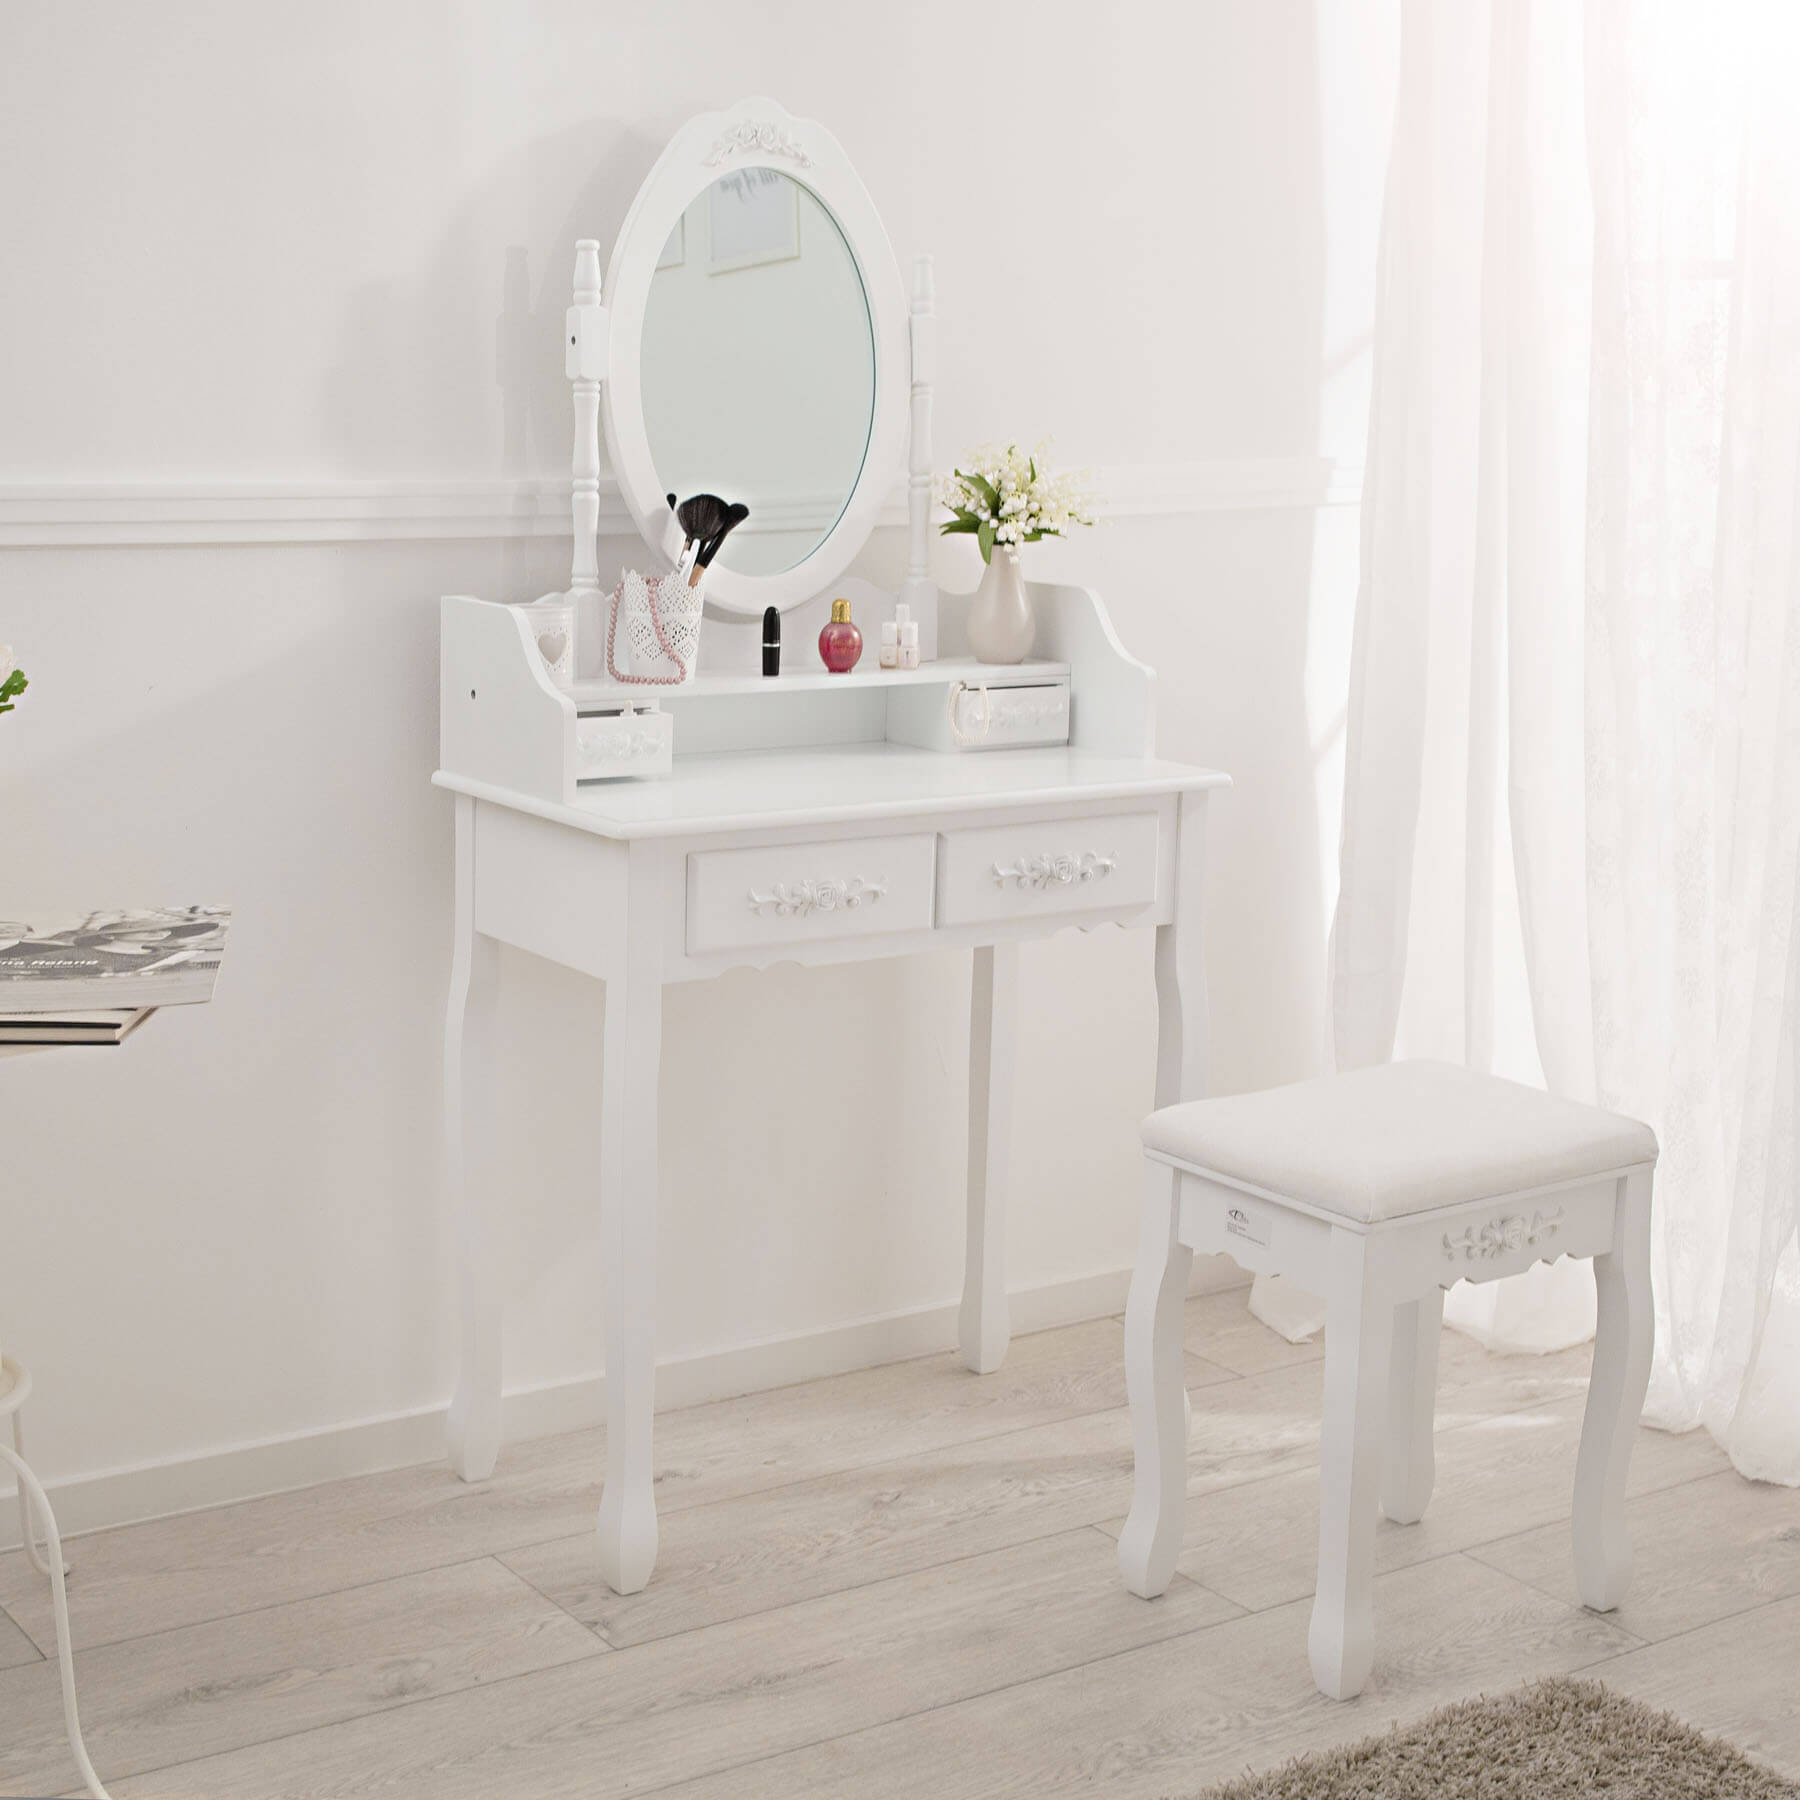 coiffeuse meuble table de maquillage tabouret commode avec miroir 4 tiroir blanc ebay. Black Bedroom Furniture Sets. Home Design Ideas